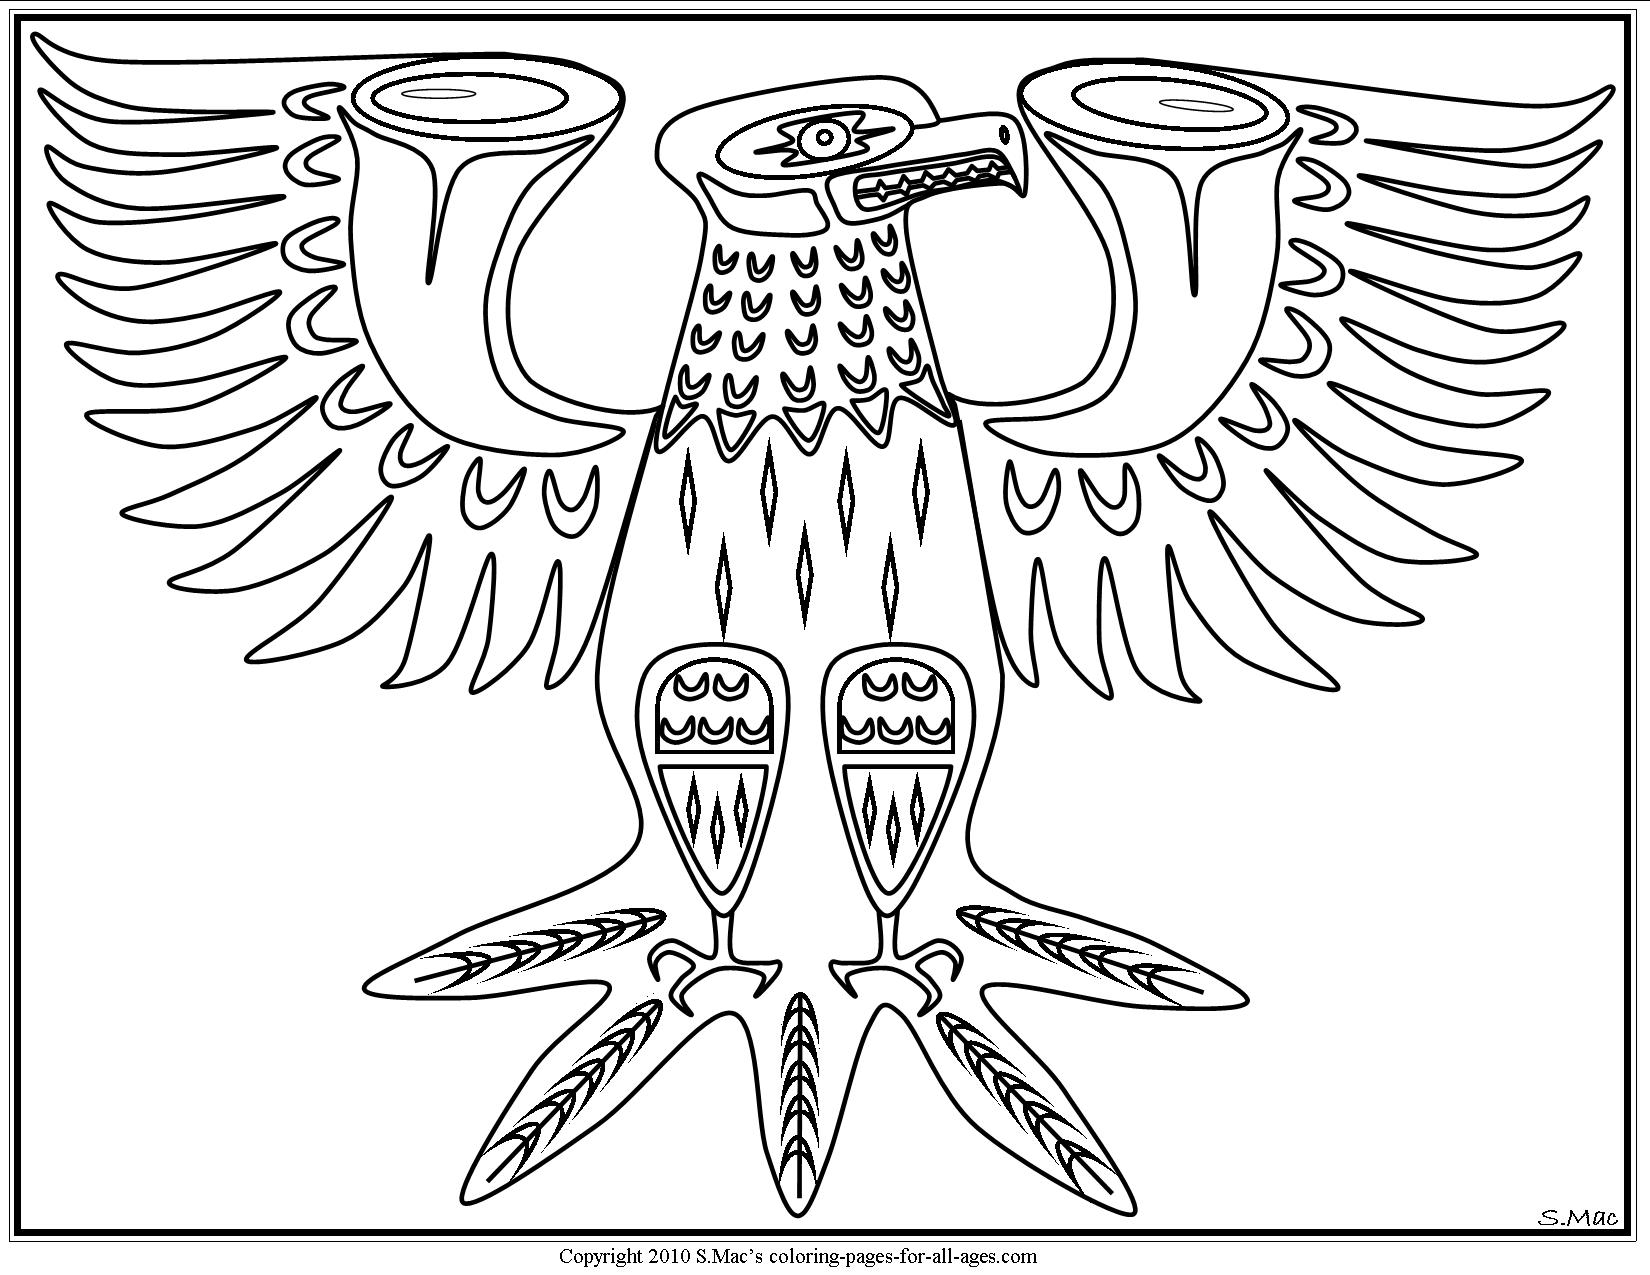 native art coloring pages native american indian coloring books and free coloring pages art native coloring